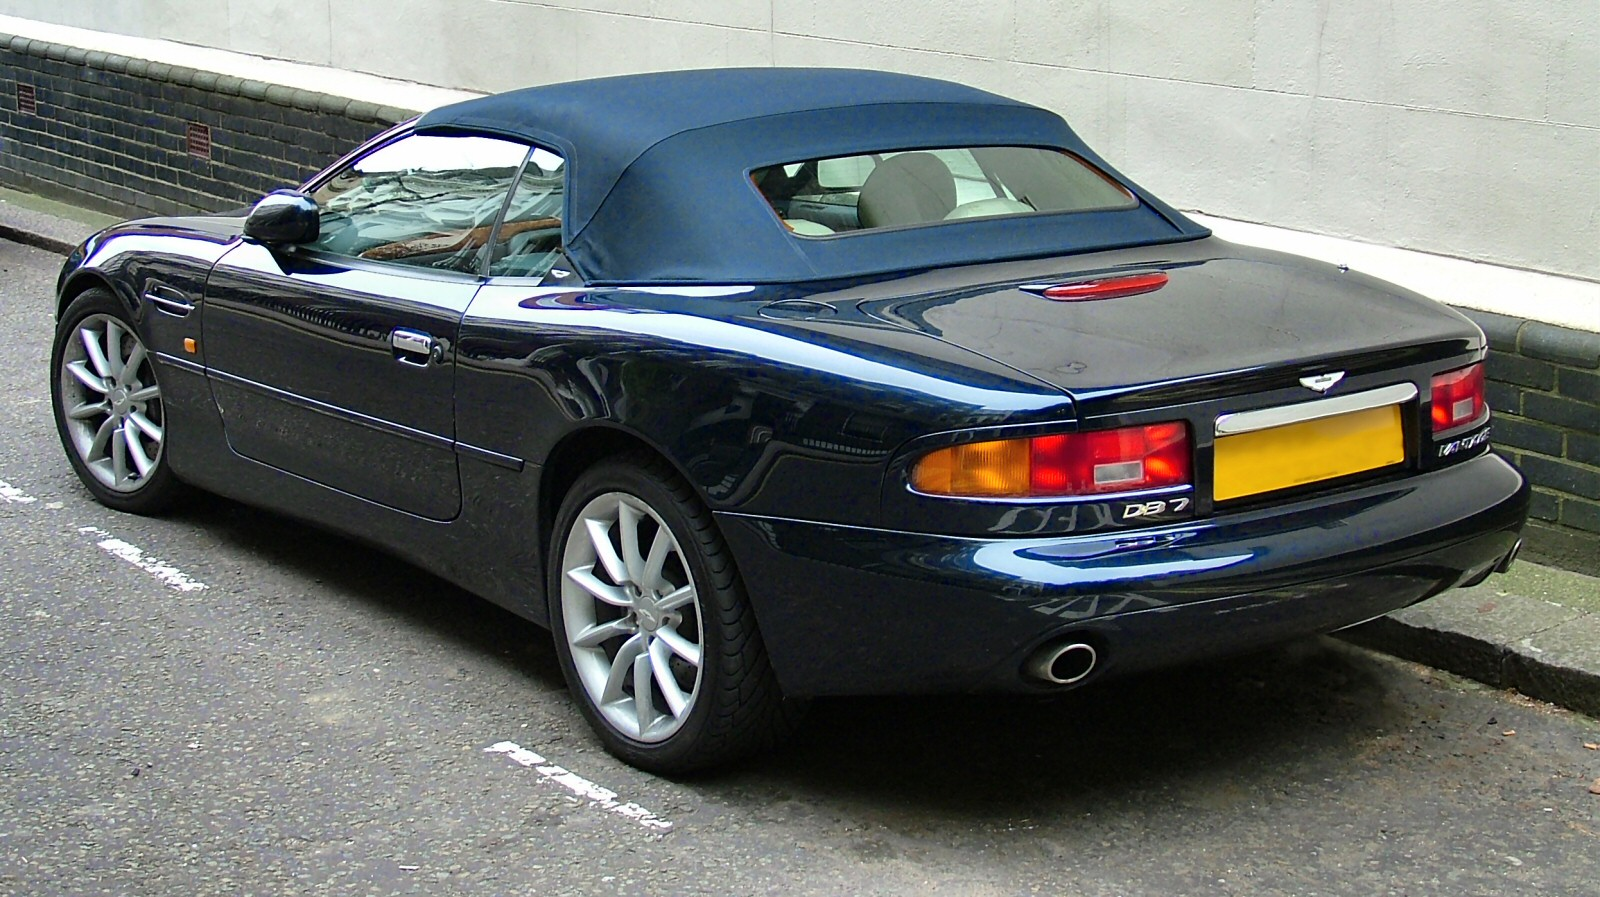 Cars aston martin db7 #4